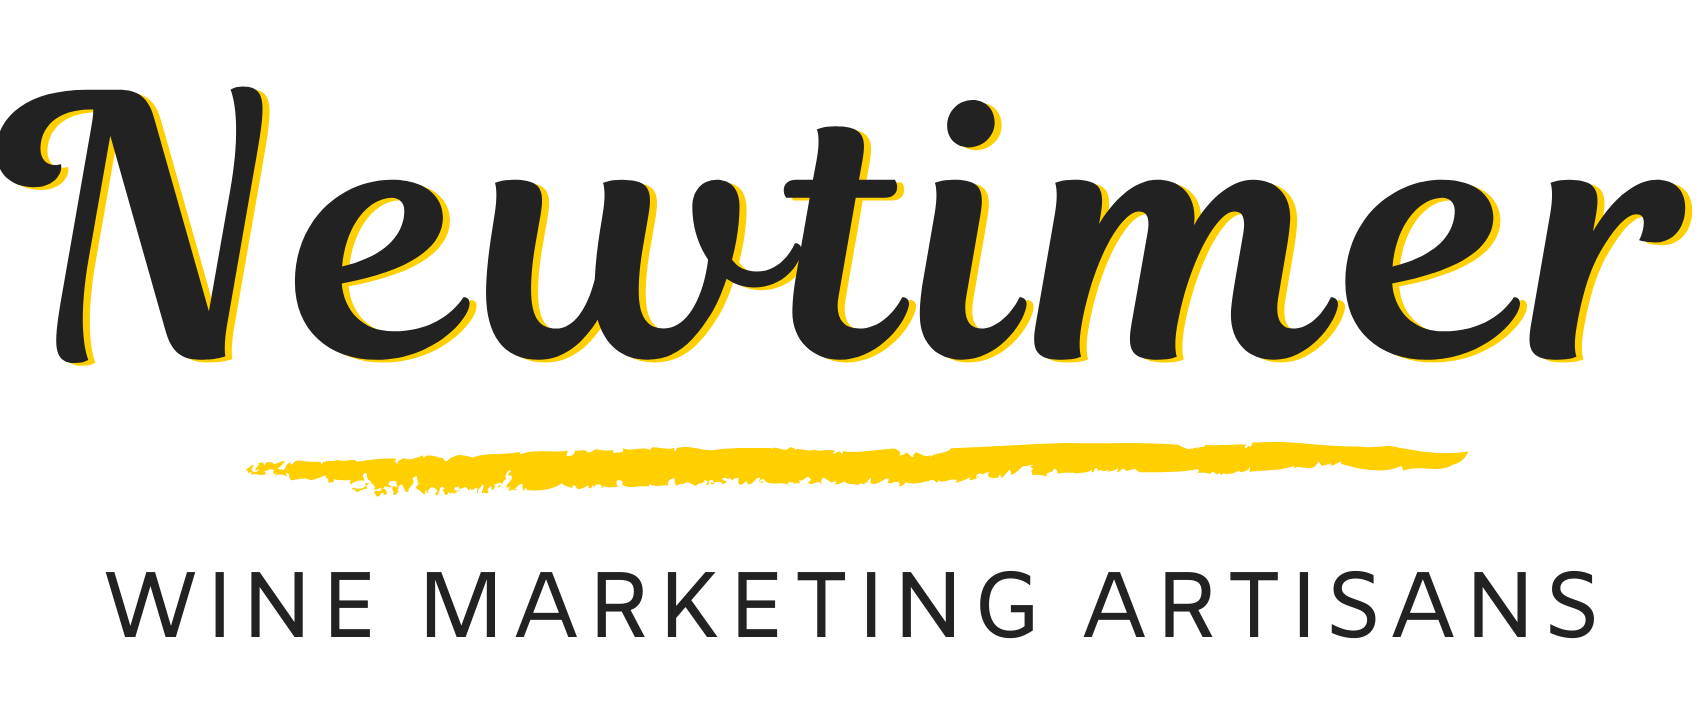 Newtimer Marketing logo